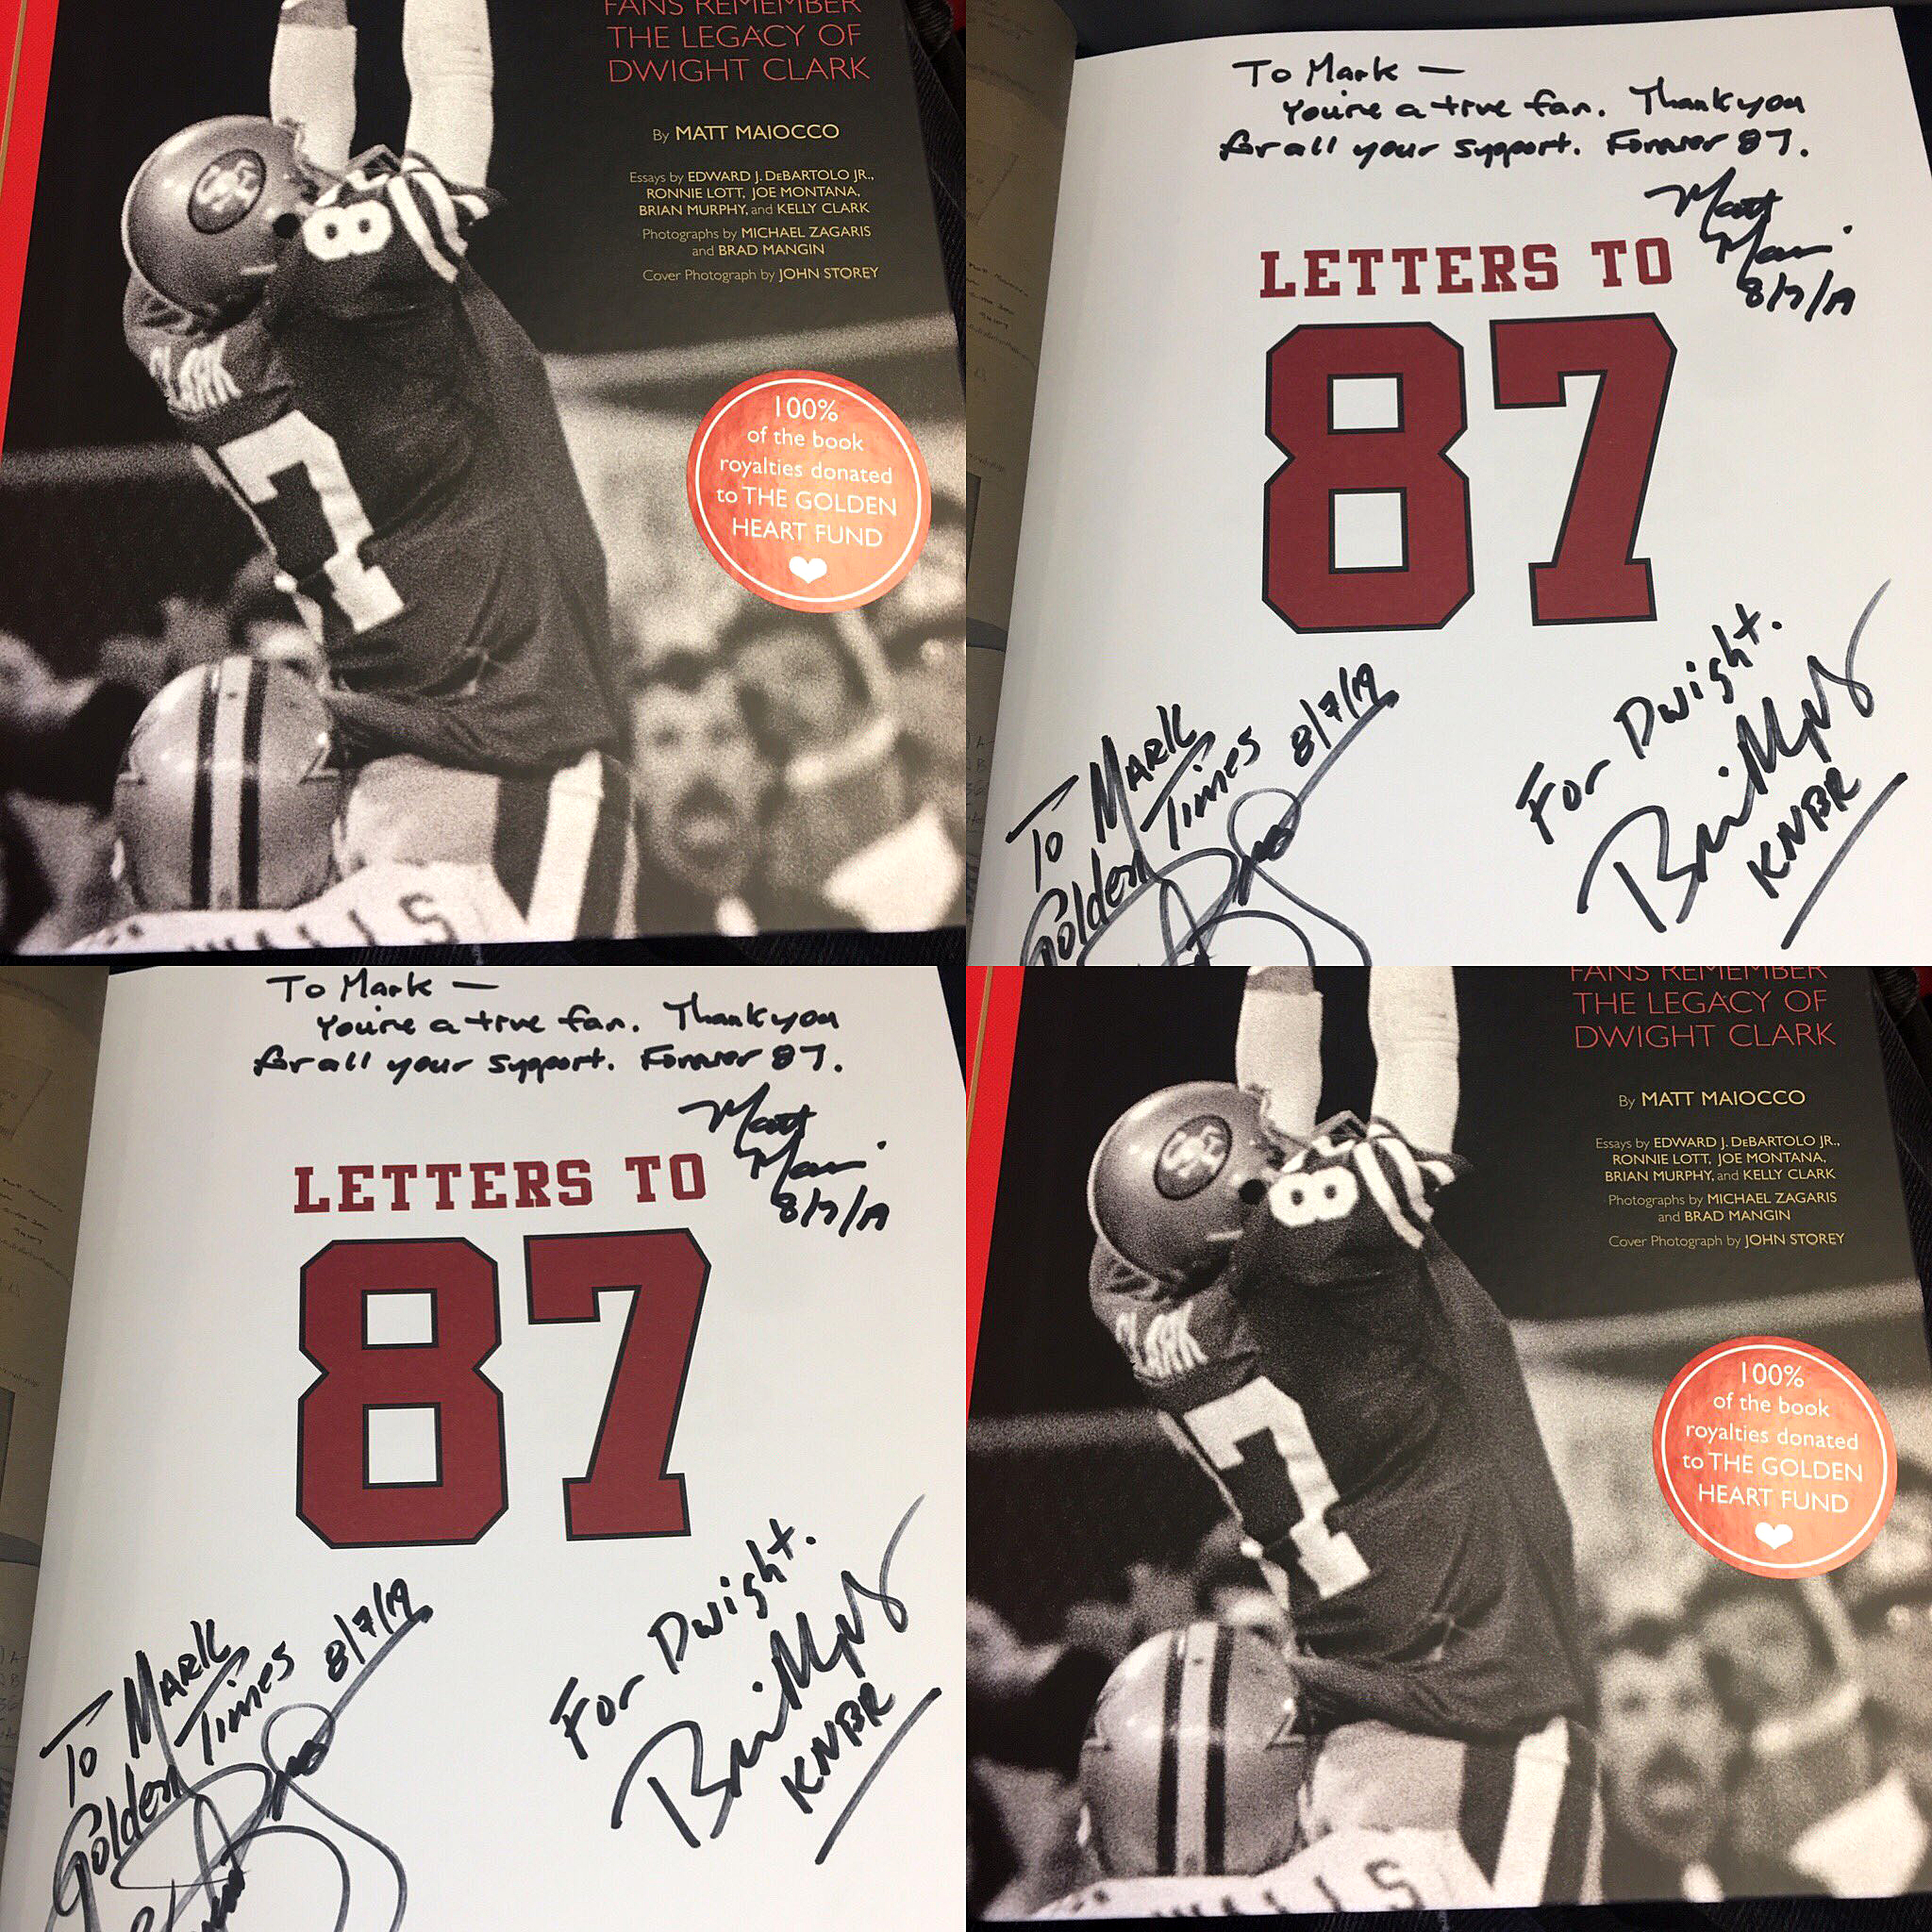 @49erMark49 - Proud to own this heart-felt book #LettersTo87.